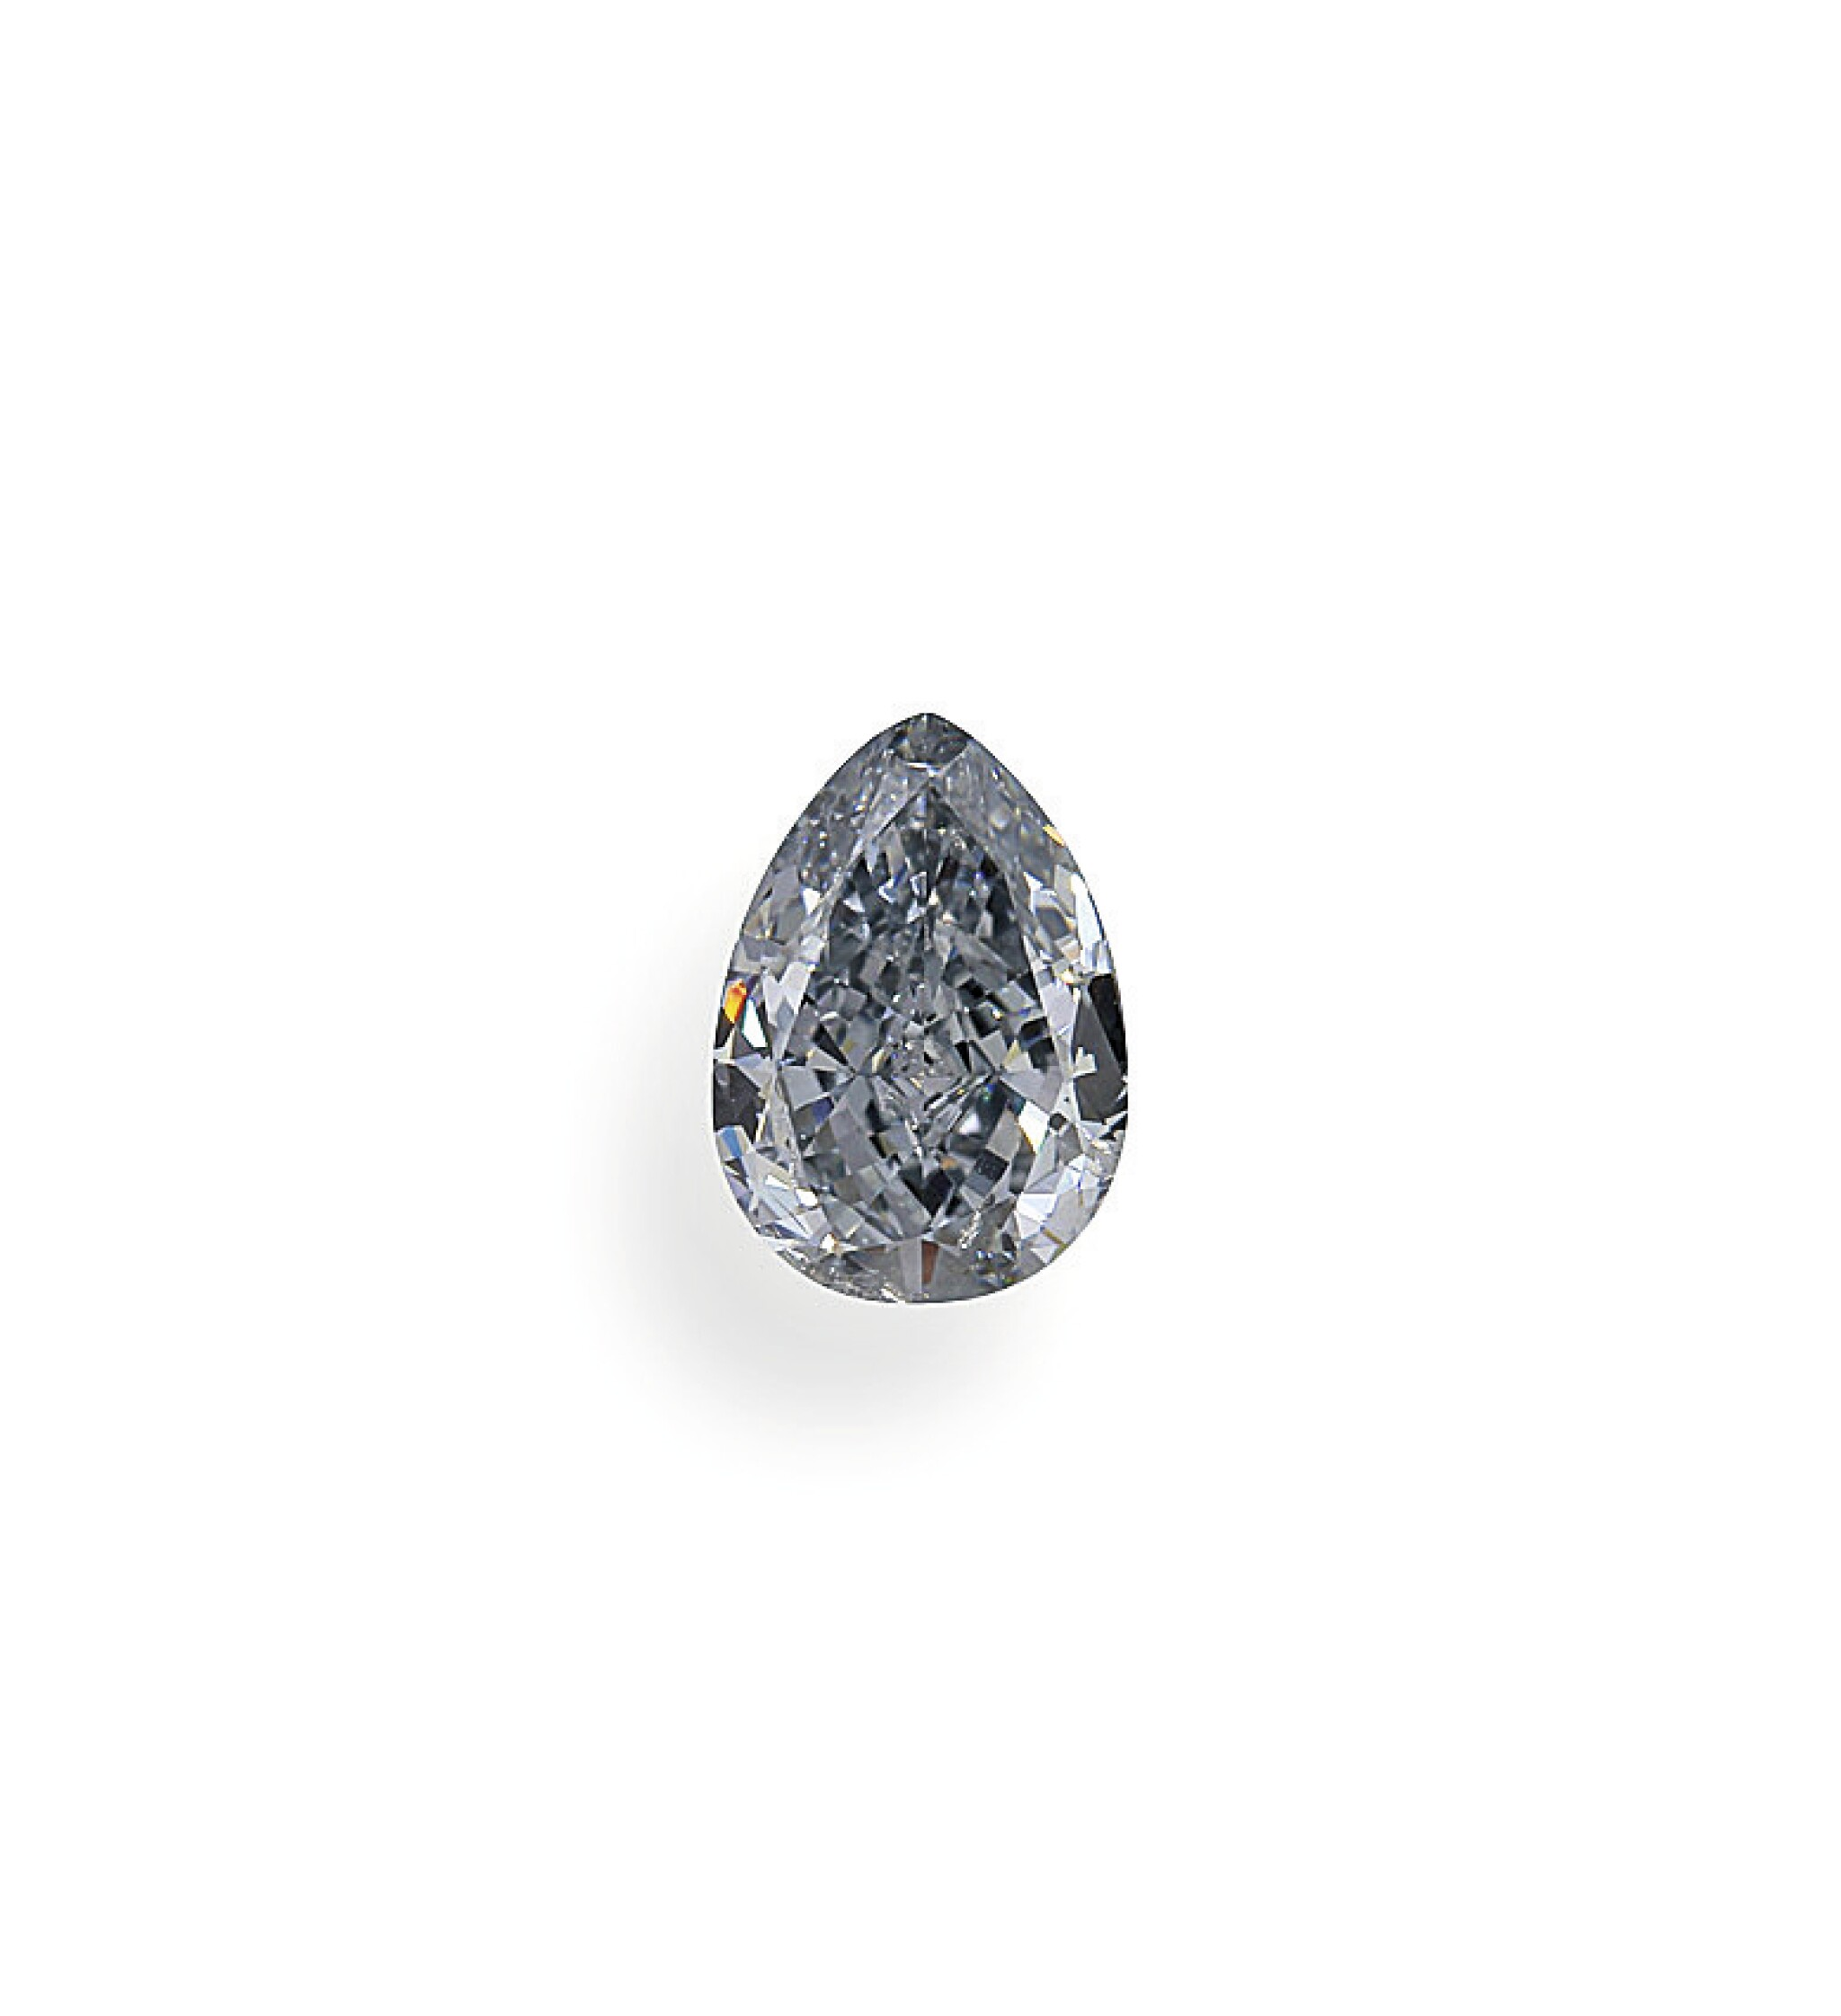 View full screen - View 1 of Lot 1. A 1.02 Carat Fancy Blue Pear-Shaped Diamond, SI2 Clarity.